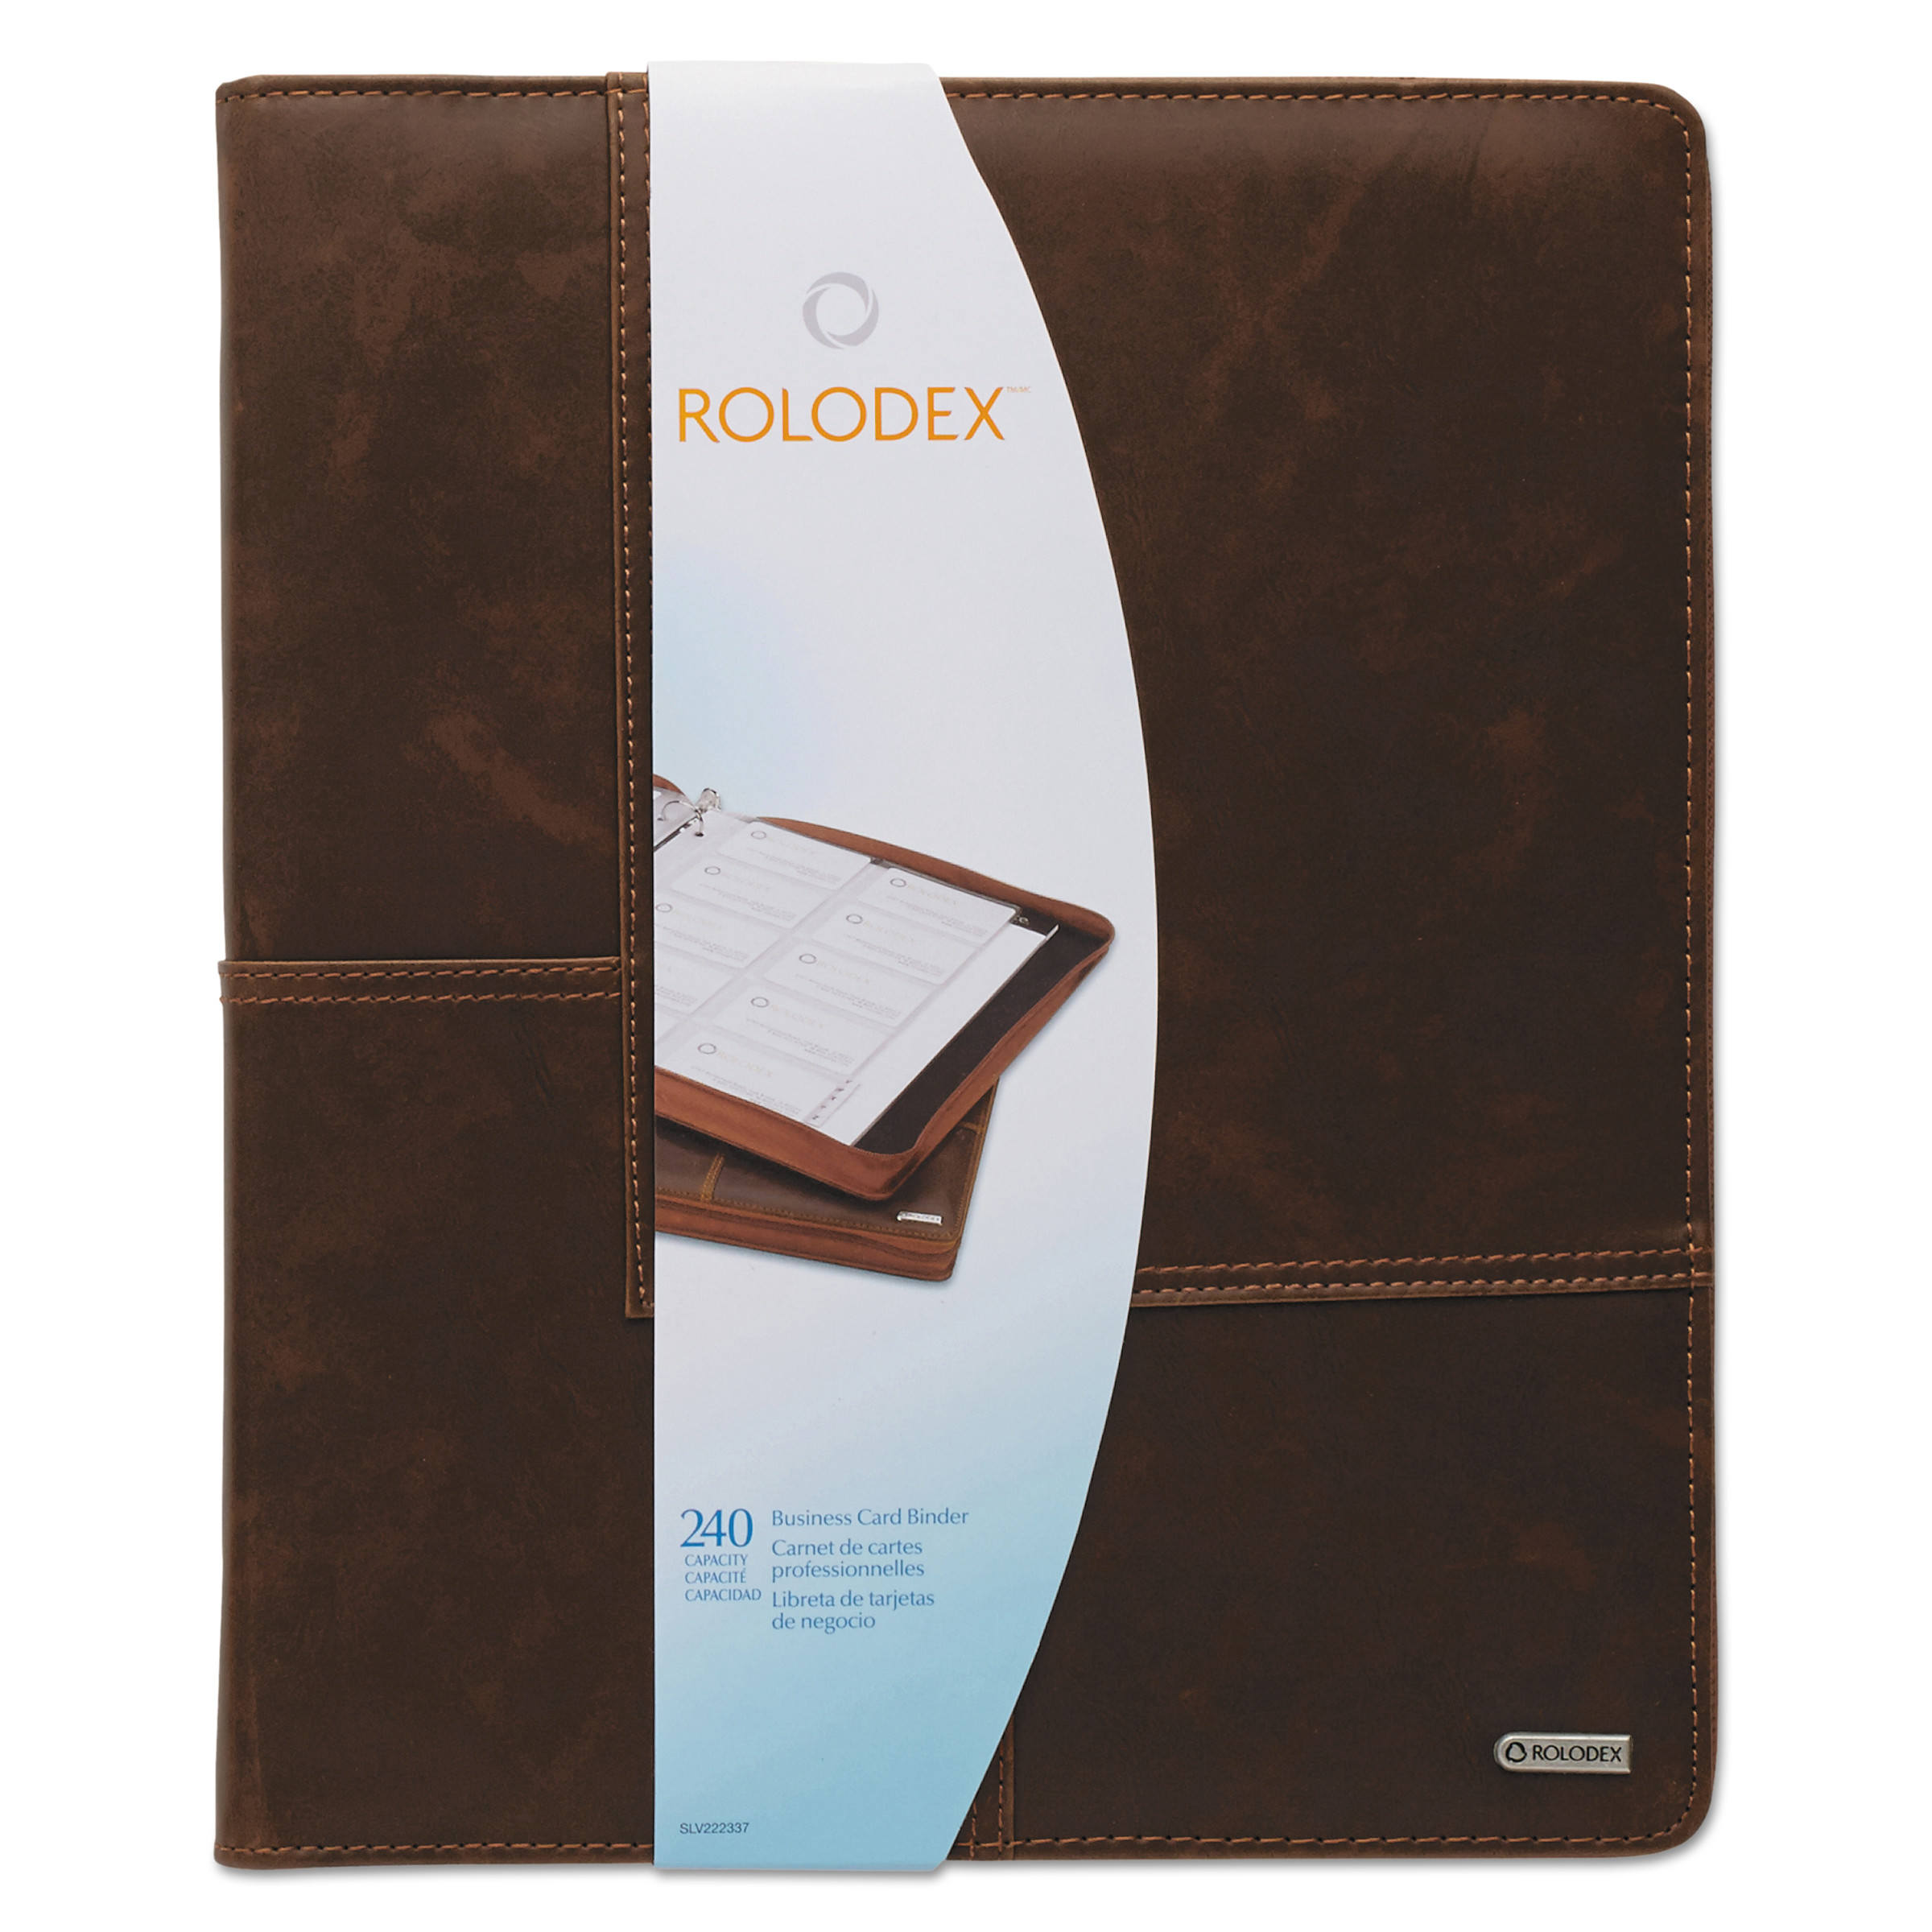 Rolodex Explorer Leather Organizer Business Card Book, 240-Card Cap ...